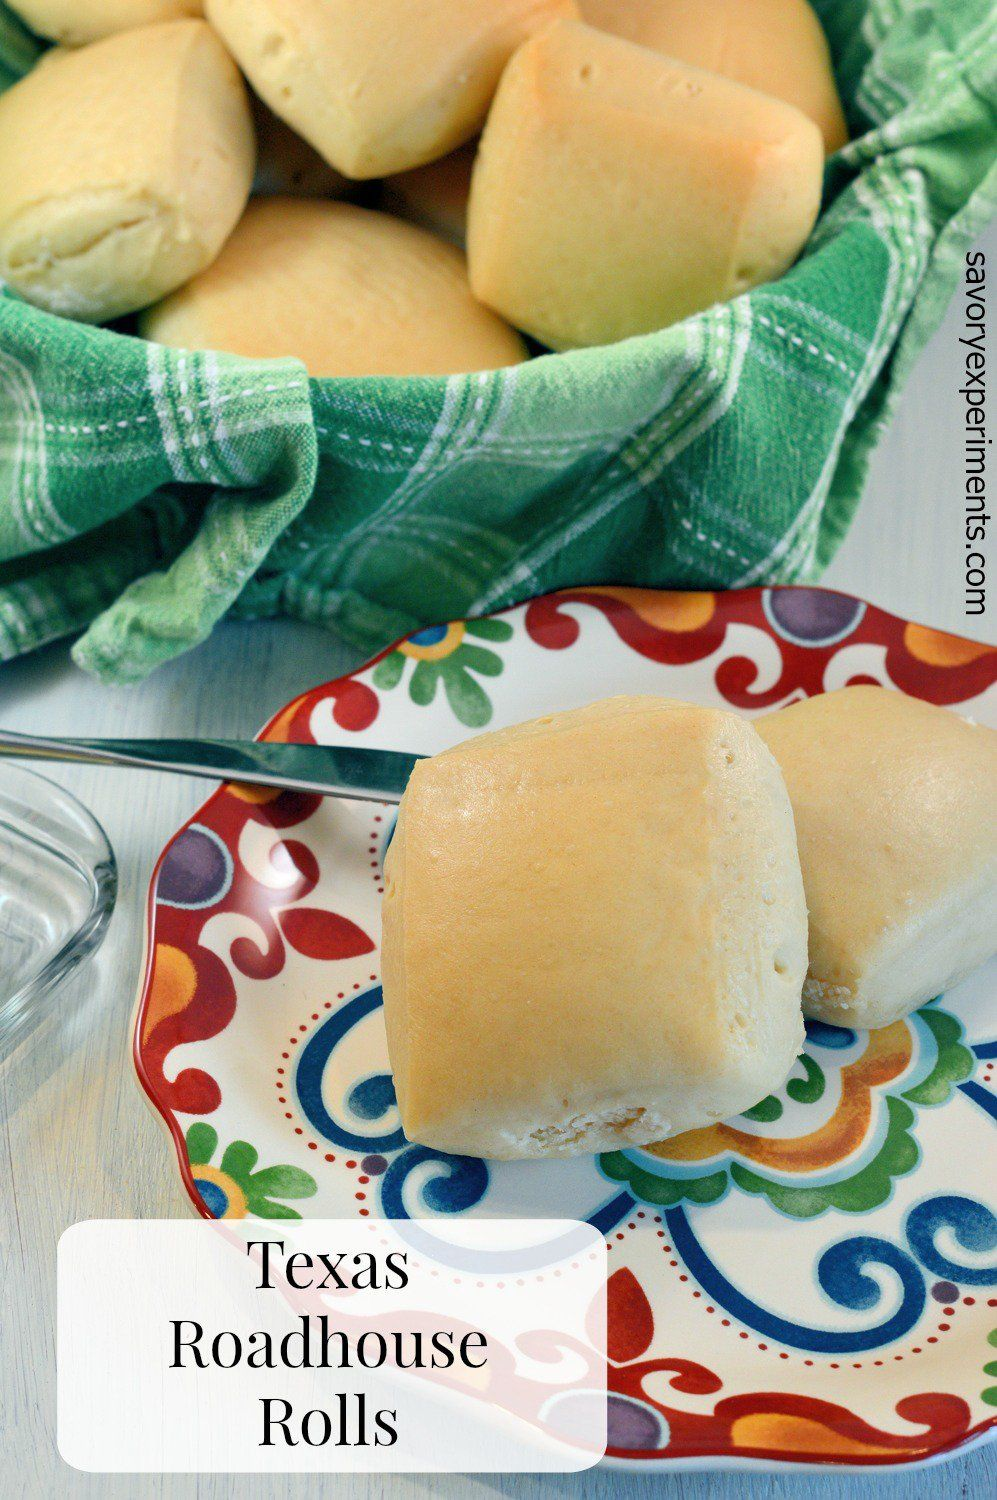 Copy Cat Texas Roadhouse Rolls Recipe- make these famous rolls at home!